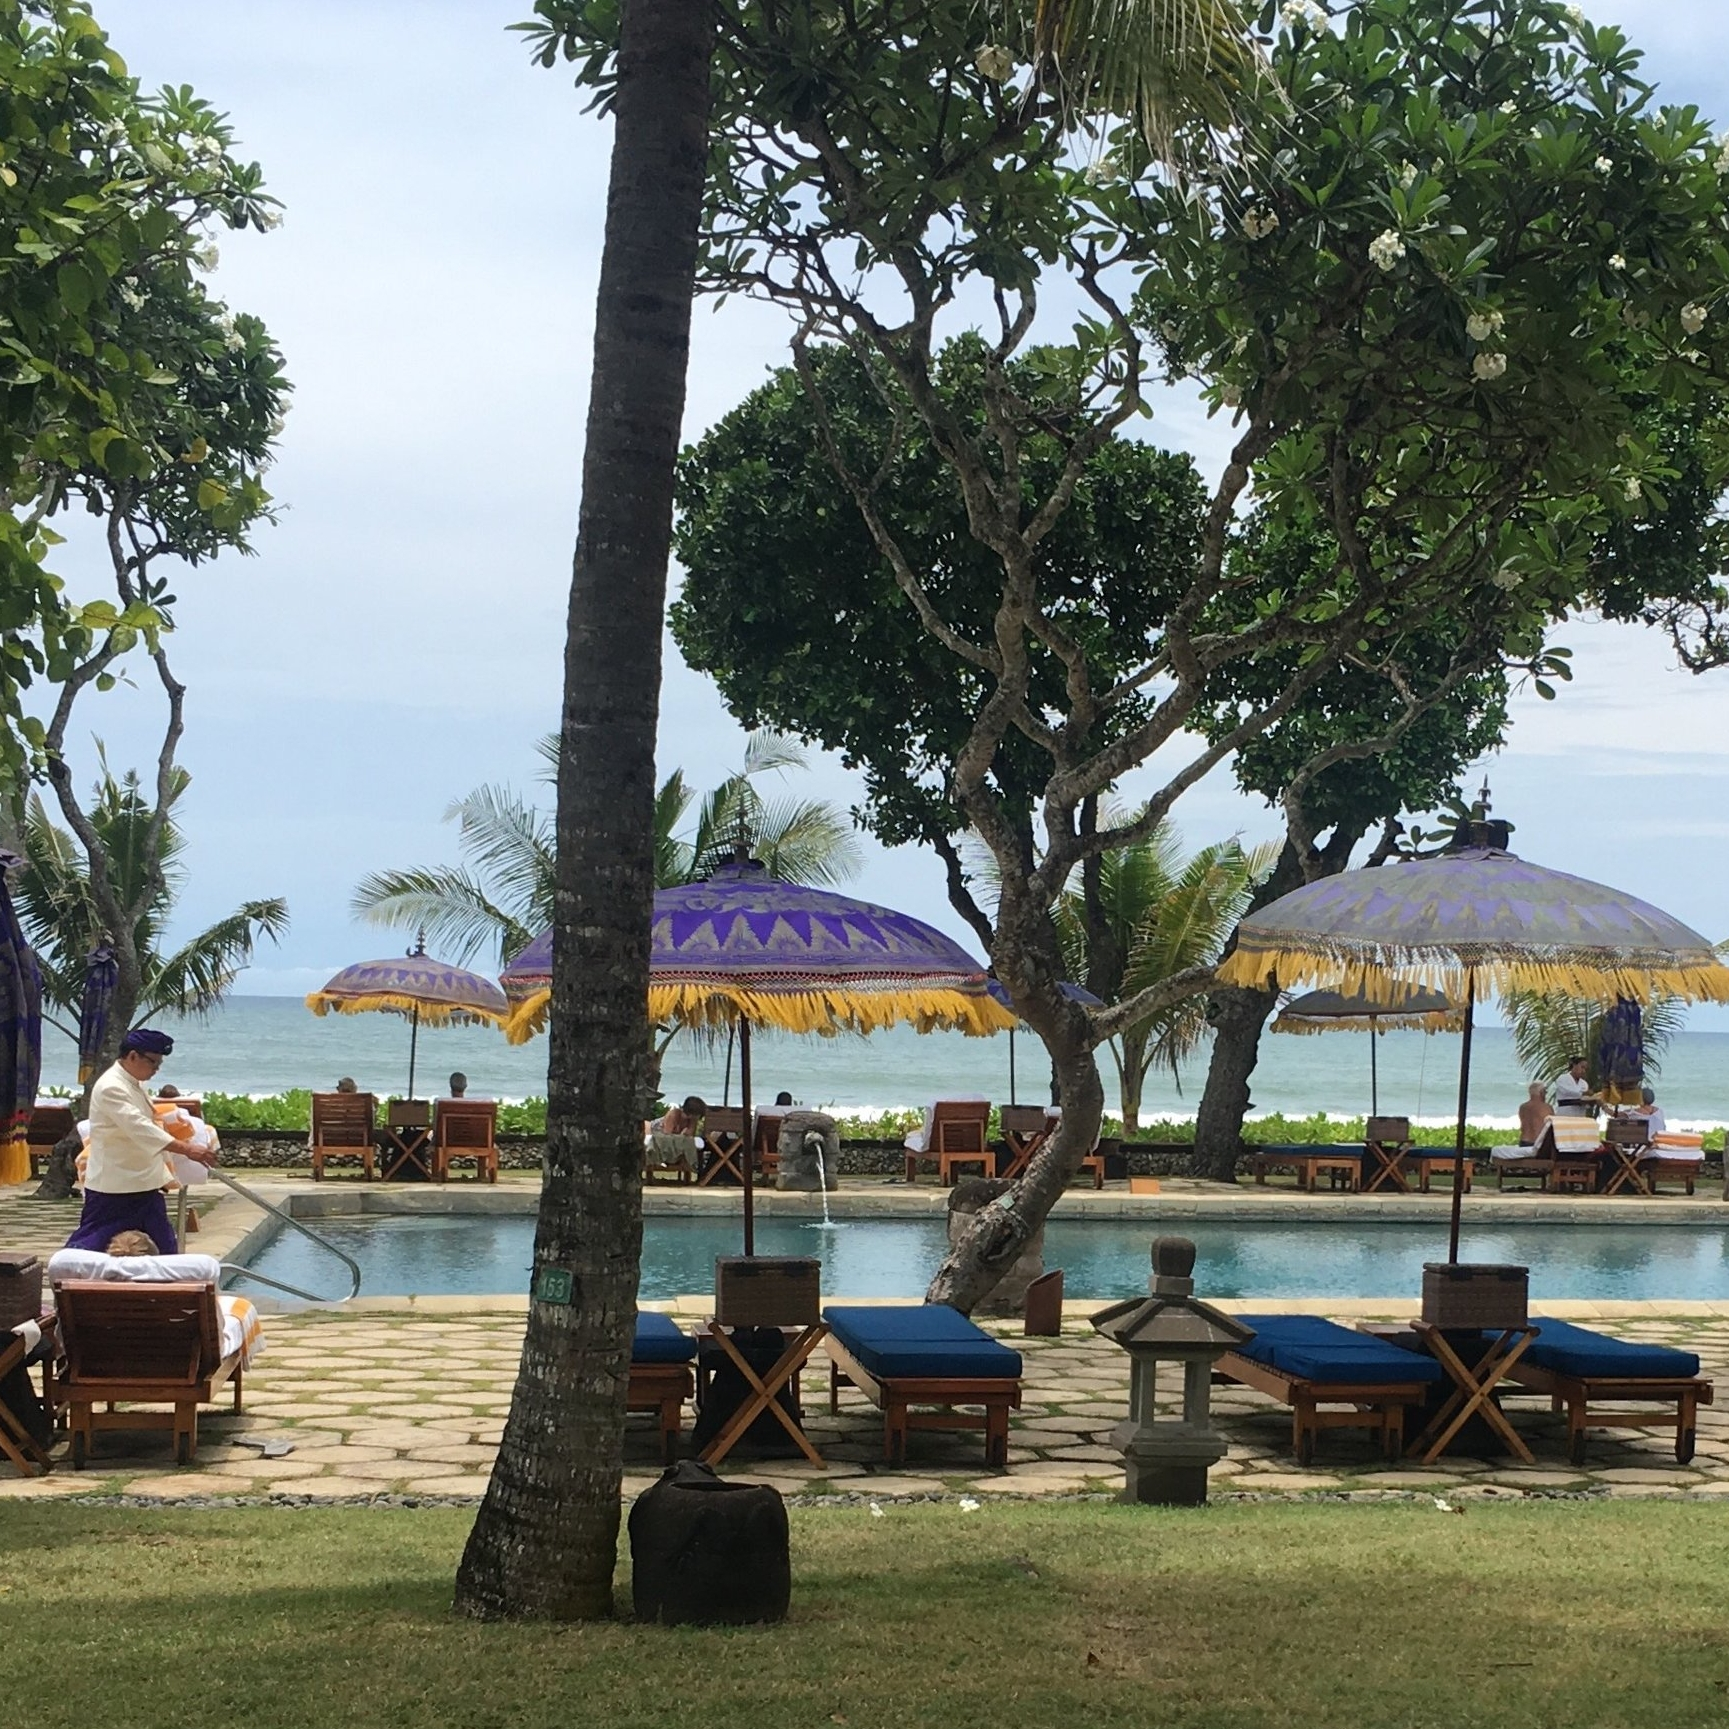 Lawns, pool, beach... the outlook at the Oberoi Hotel, Bali